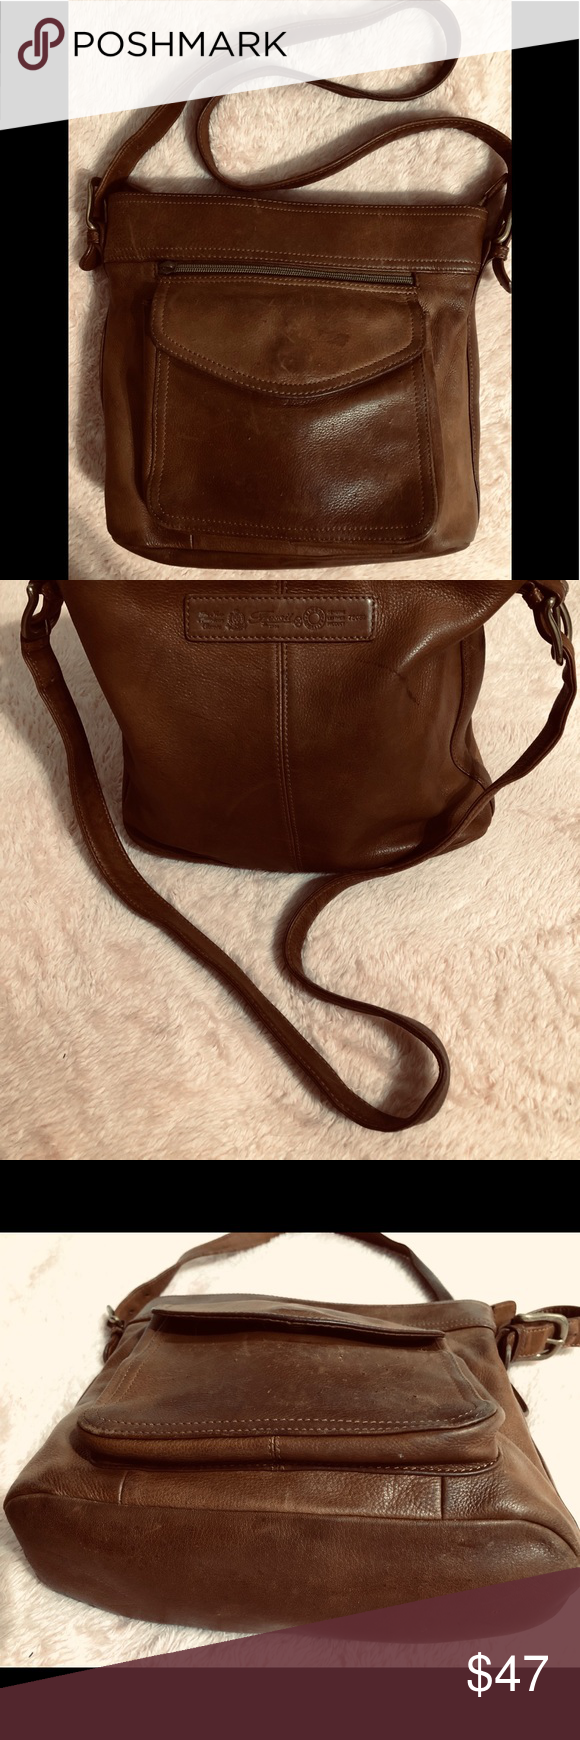 BROWN LEATHER SHOULDER BAG  PURSE FOSSIL BRAND BEAUTIFUL BROWN SOFT GENUINE LEATHER SHOULDER BAG  PURSE 11 12 x 9 12 x 3 12 FROM TOP OF SHOULDER TO BOTTOM IS 24 STRAP FRO...